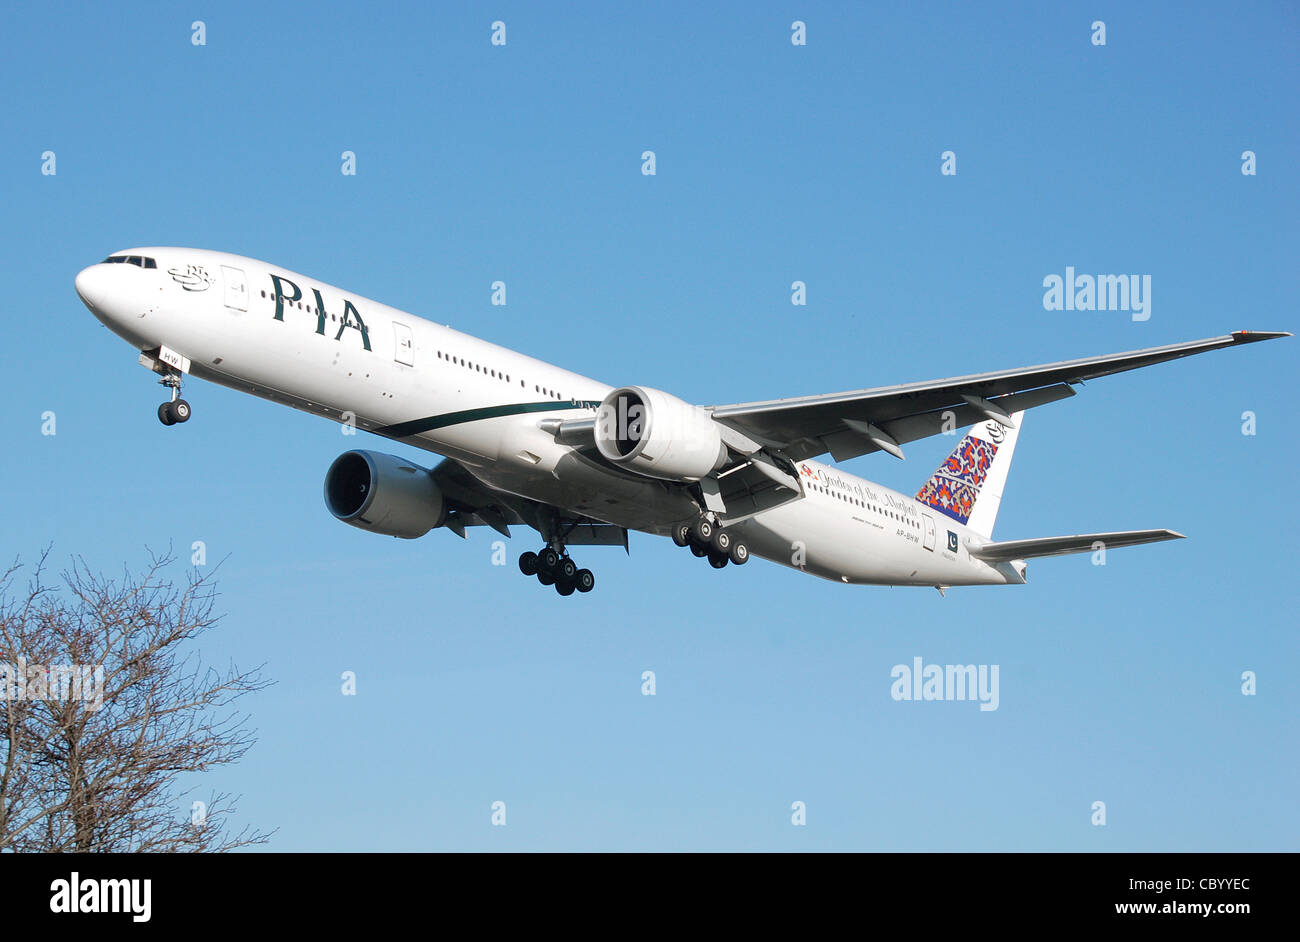 PIA Boeing 777-300ER (AP-BHW) lands at London Heathrow Airport, England. Stock Photo